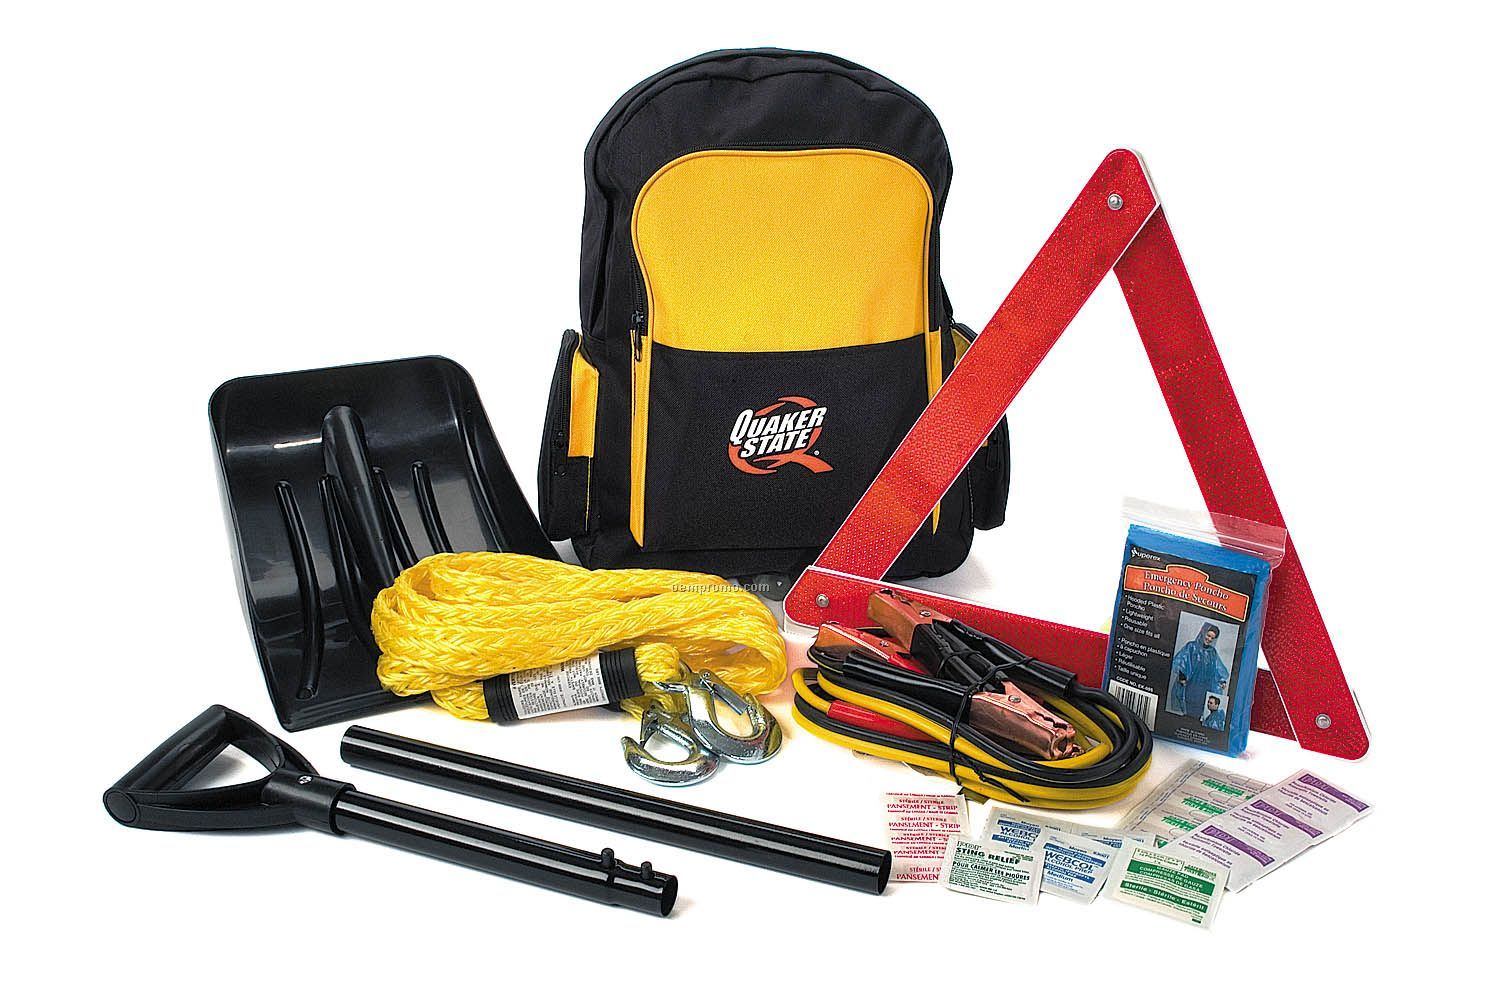 Be Prepared Road Hazard Kit